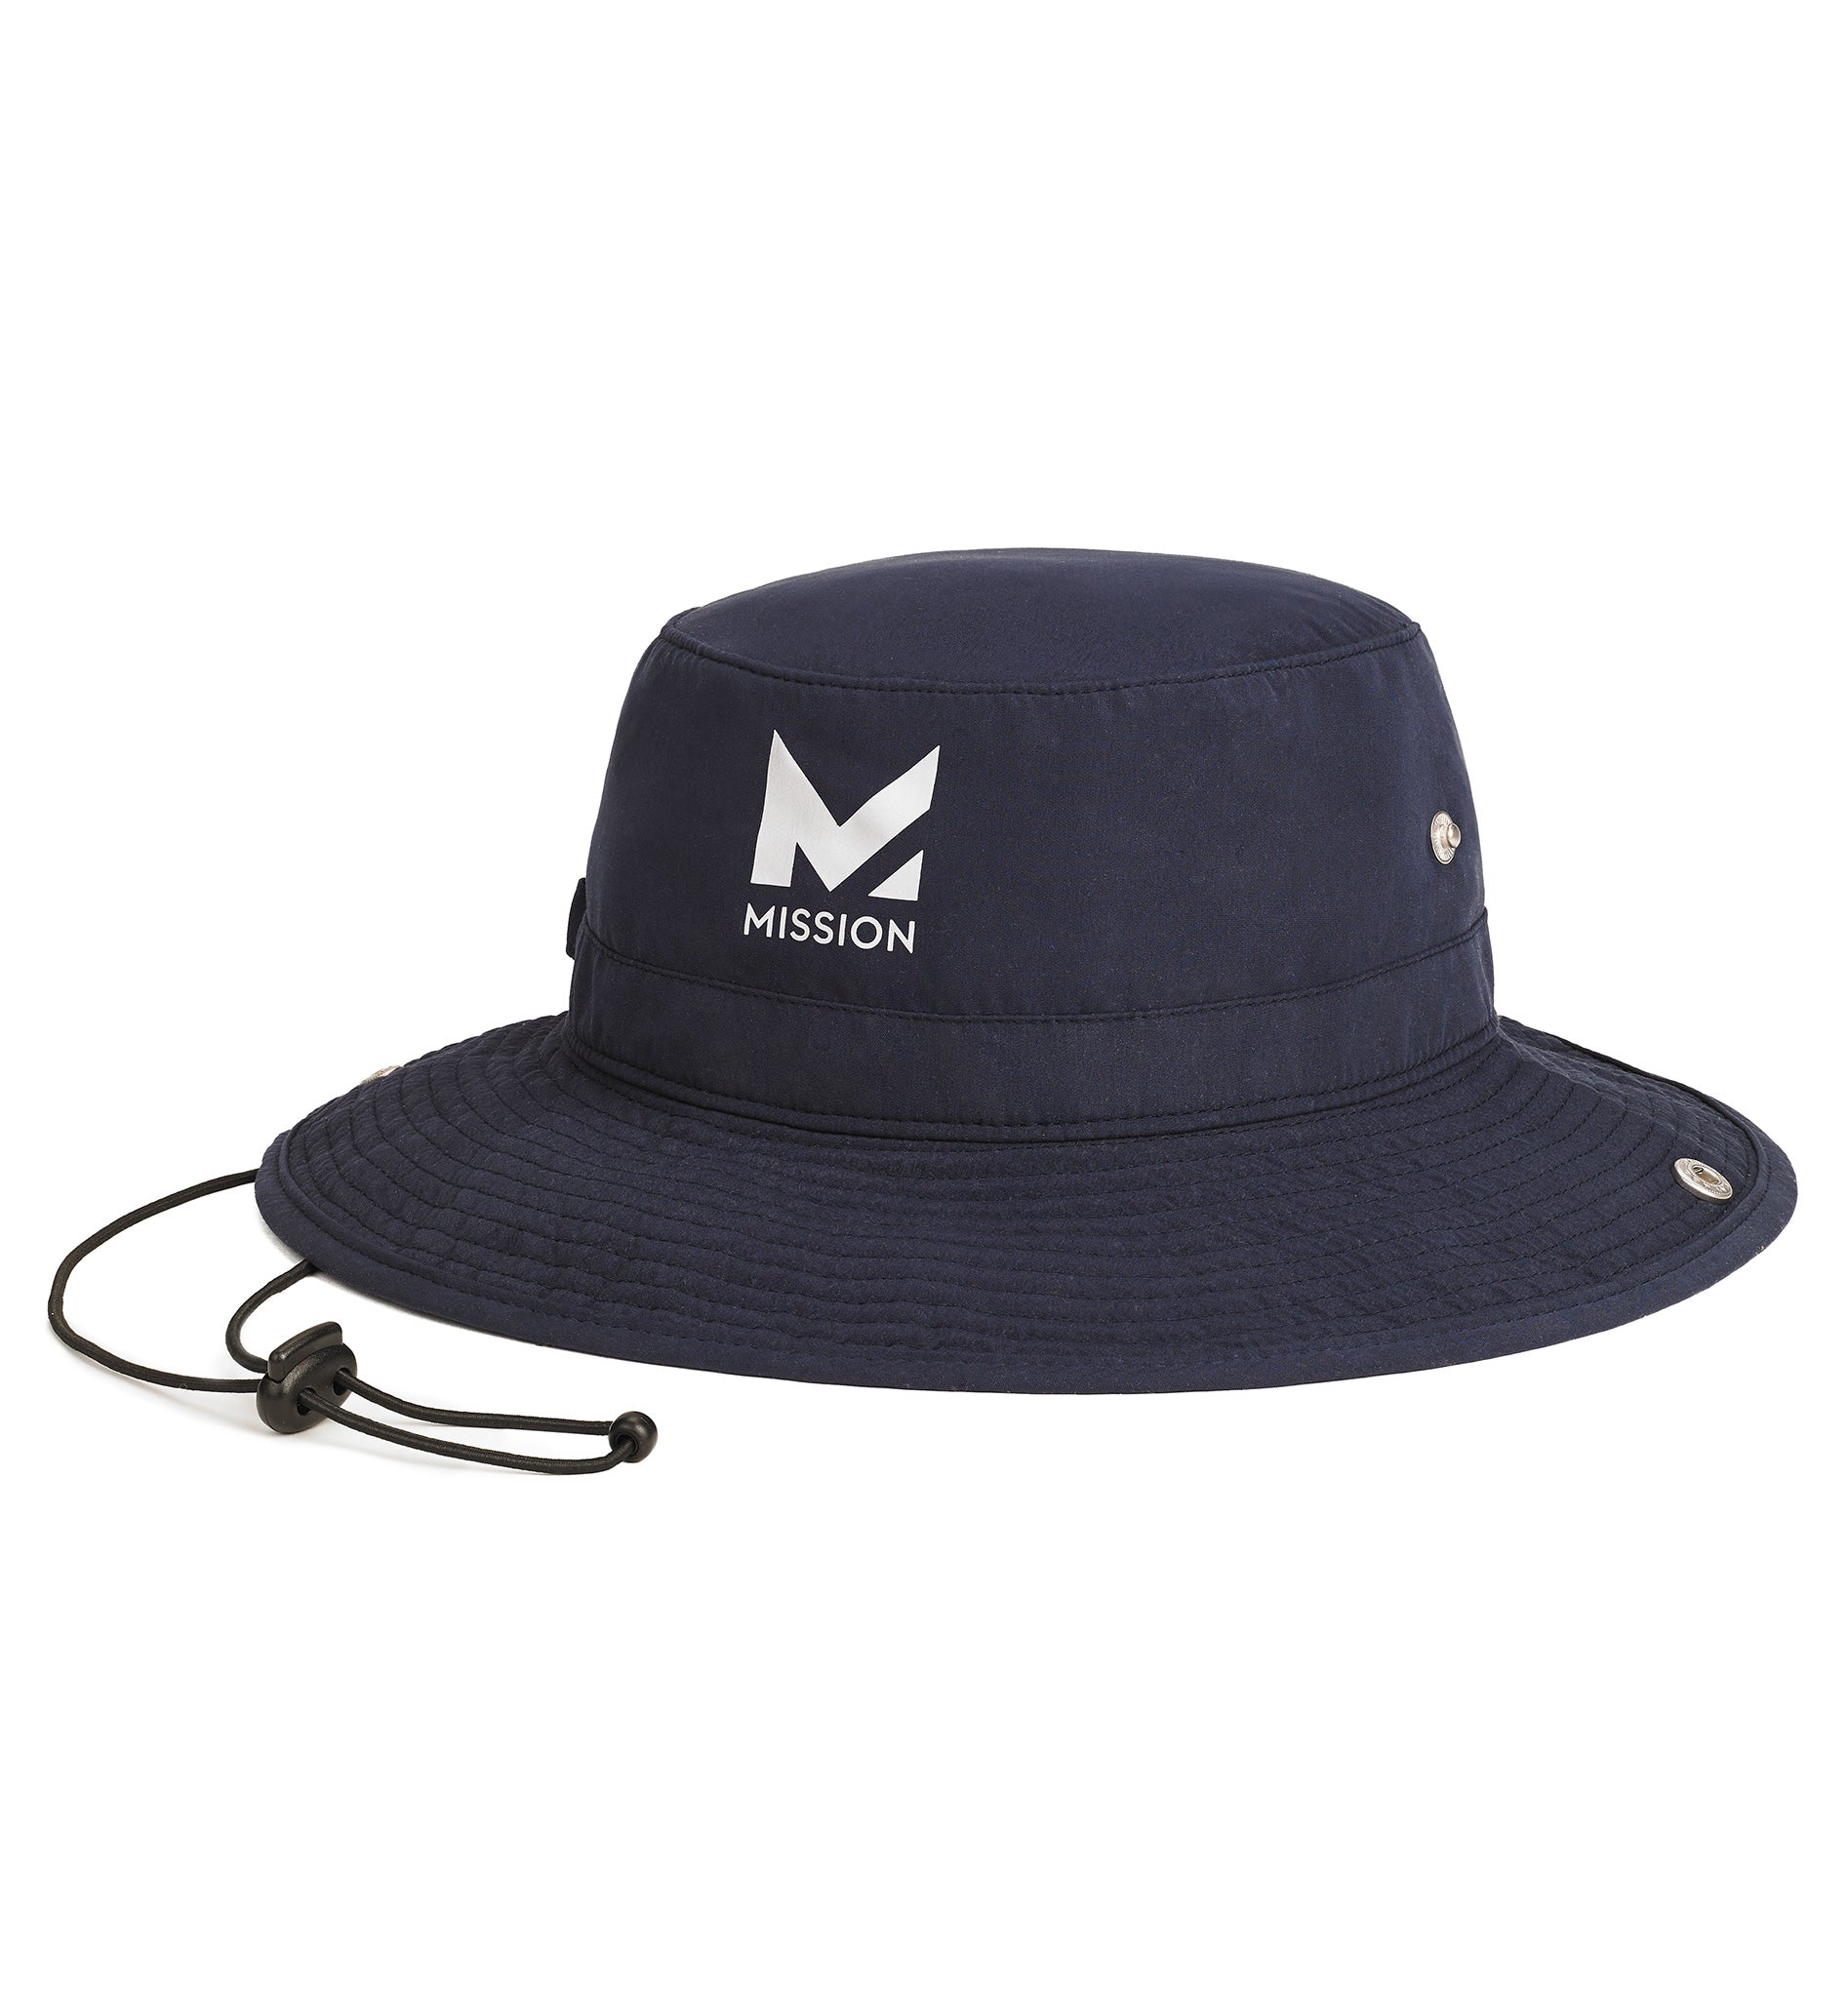 9571f7b8f10 ... promo code for mission hydroactive cooling bucket hat navy mission  0b9f9 8acee ...